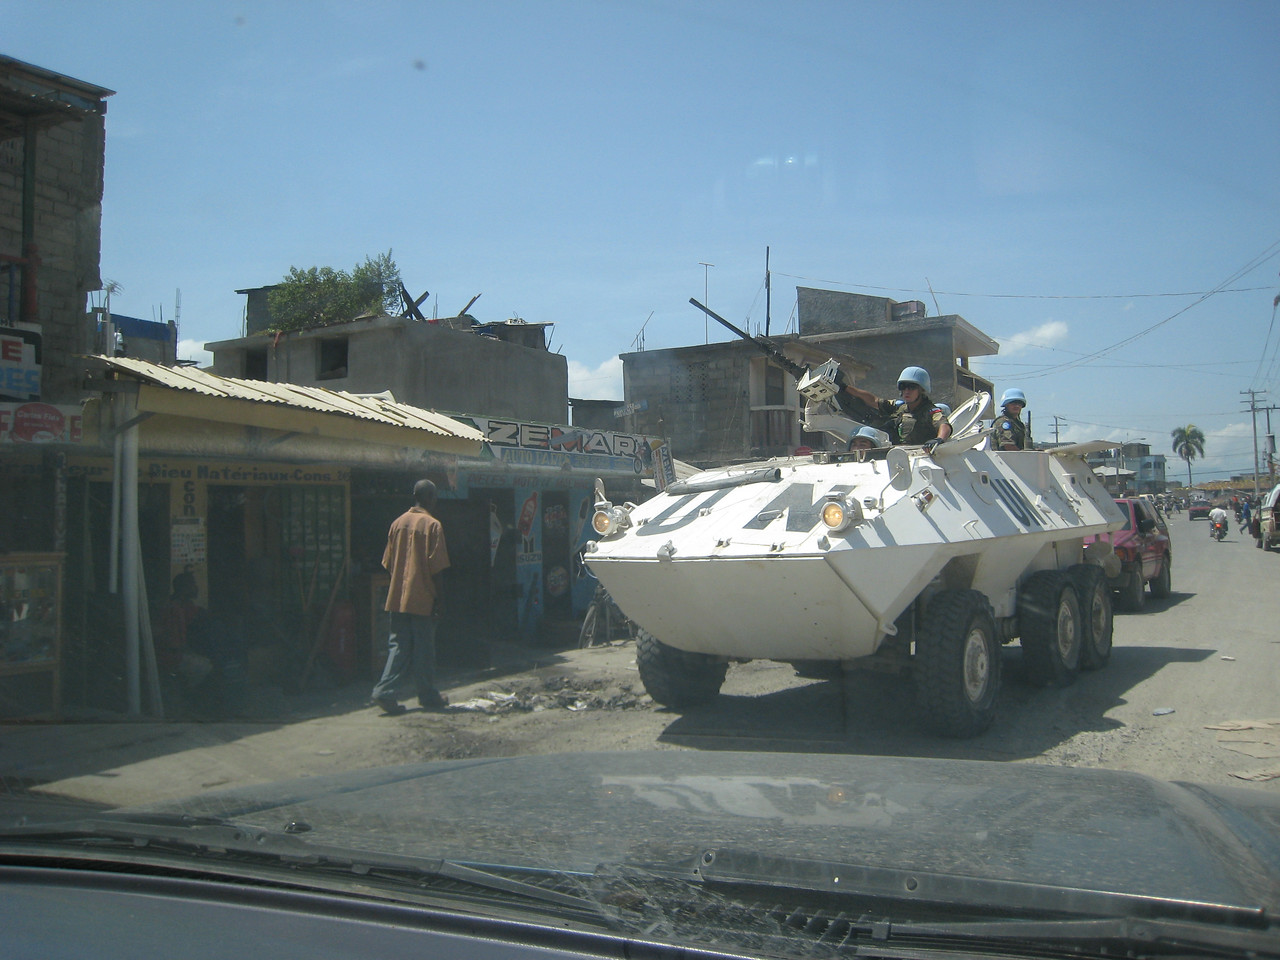 A tank driving down the street.  We saw UN military patrols constantly, usually in SUV's